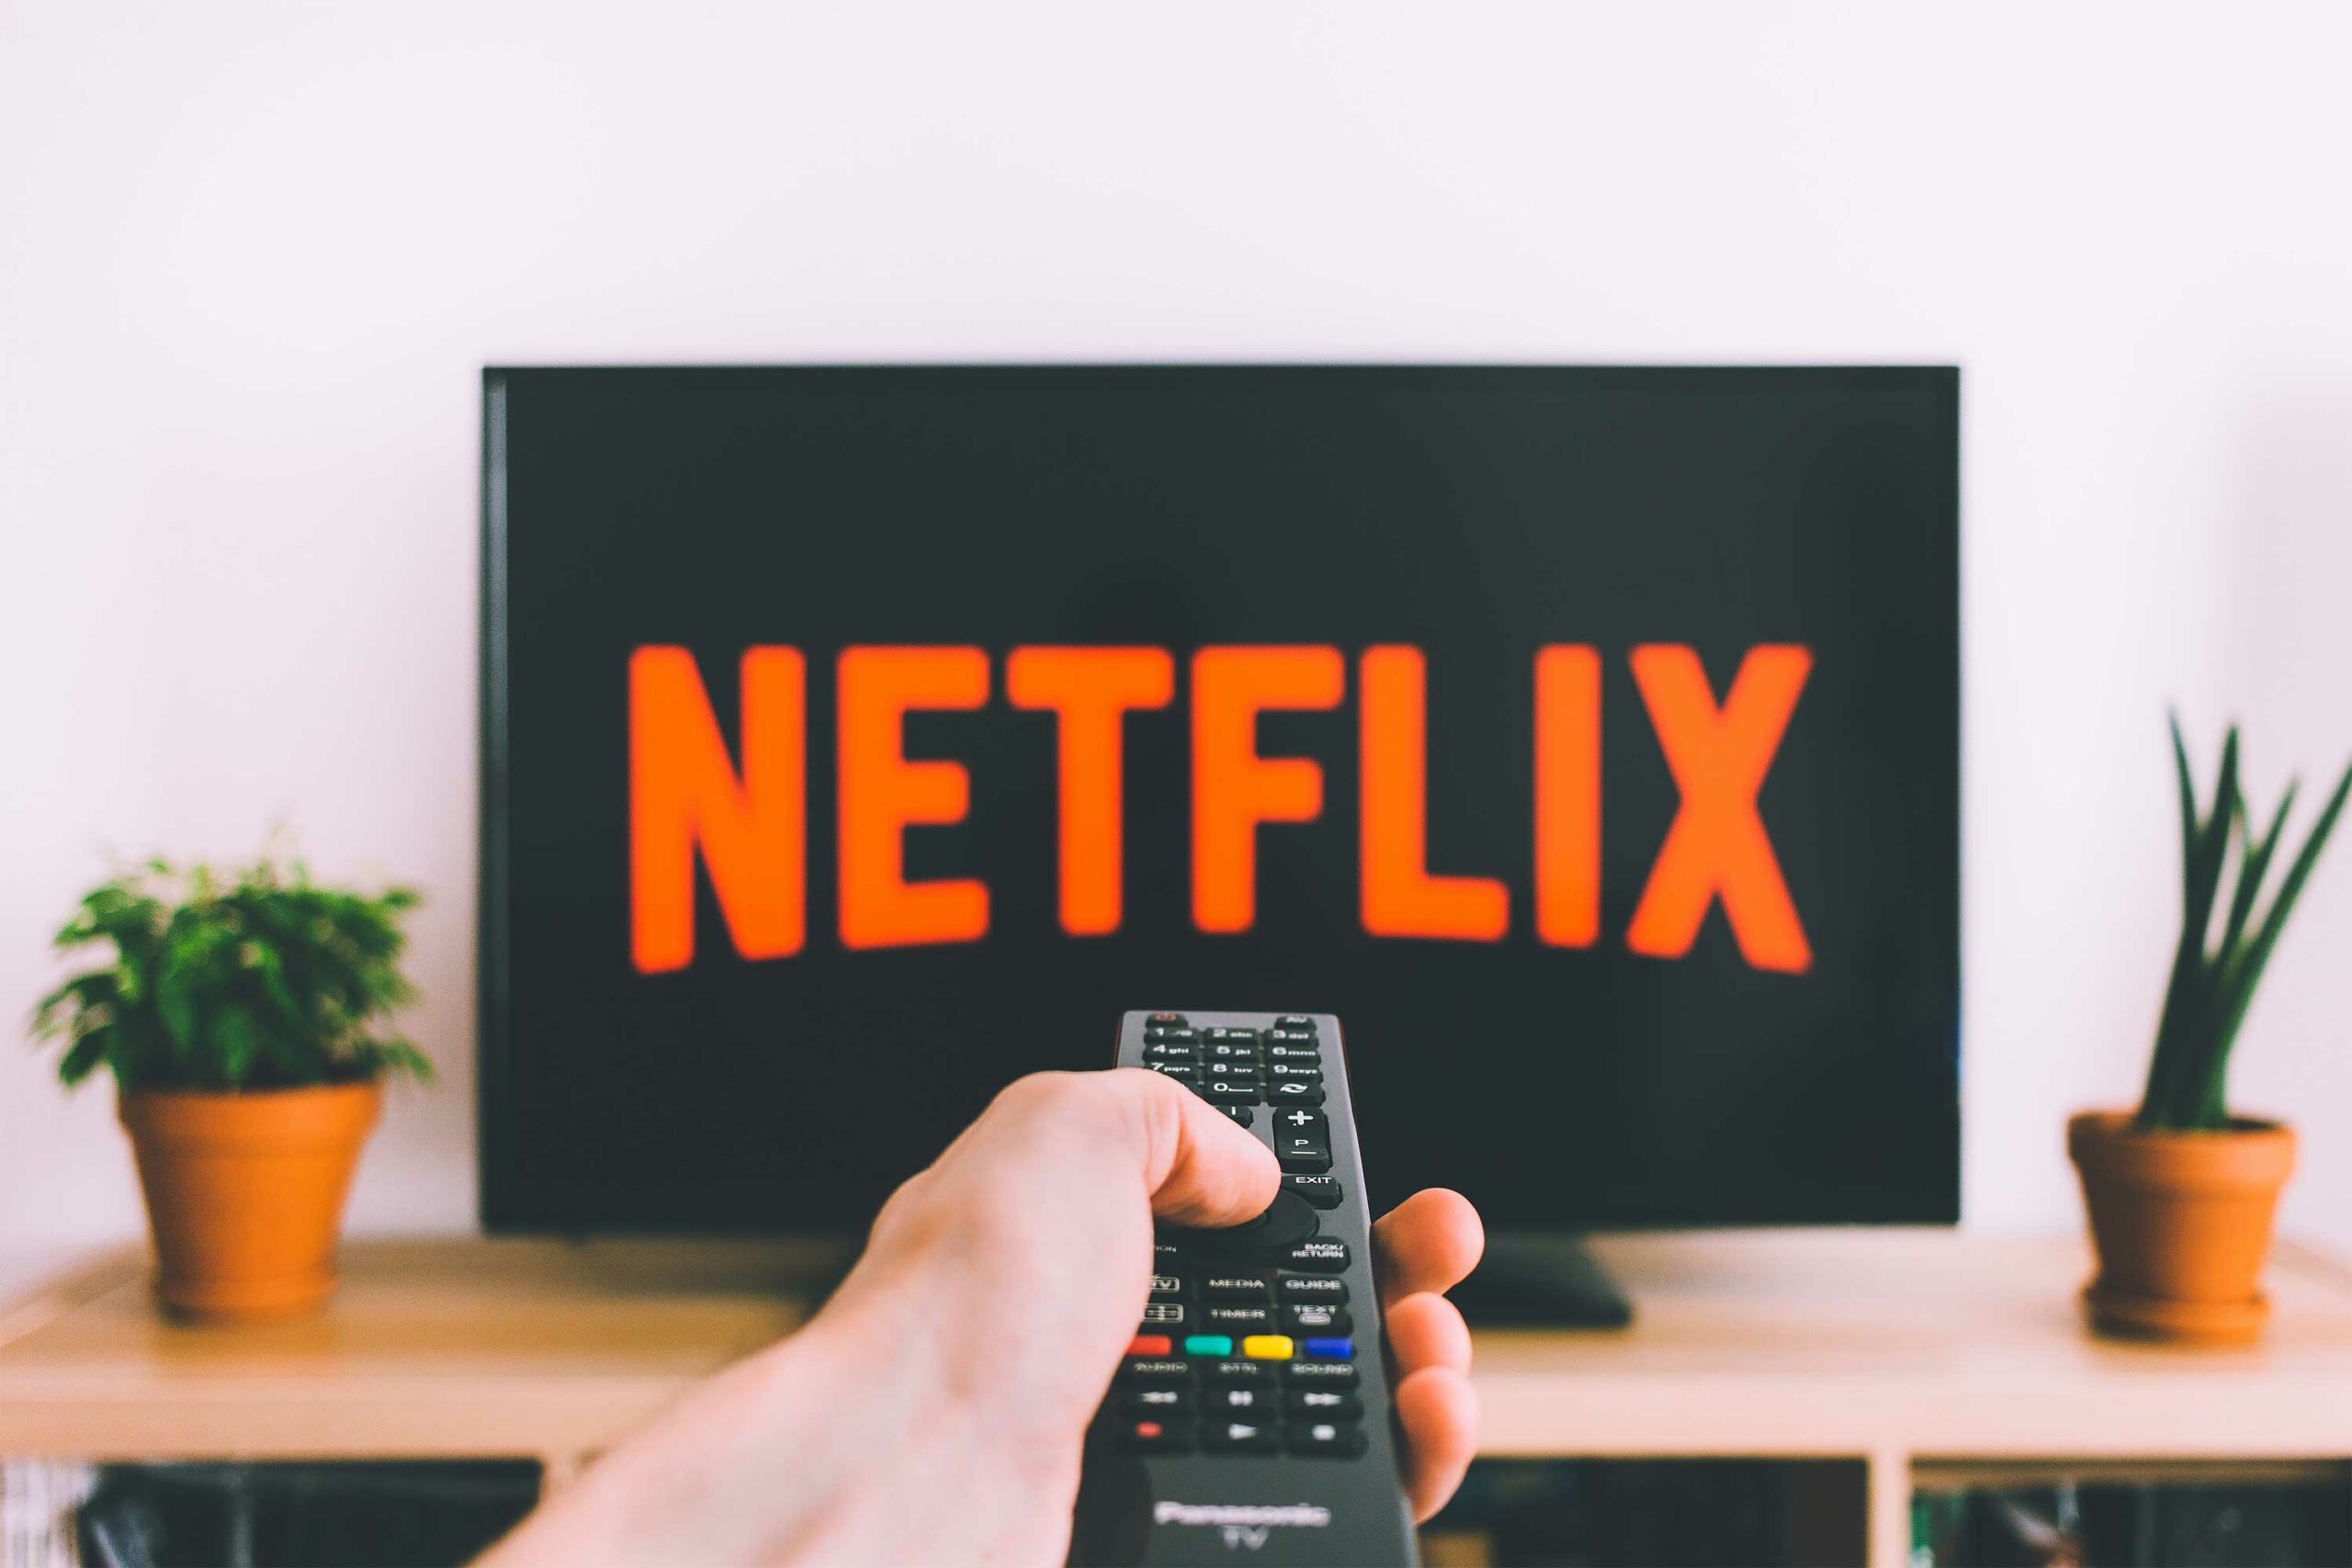 Video/Serien/Videostreaming mit Streamingdiensten wie z.B Netflix